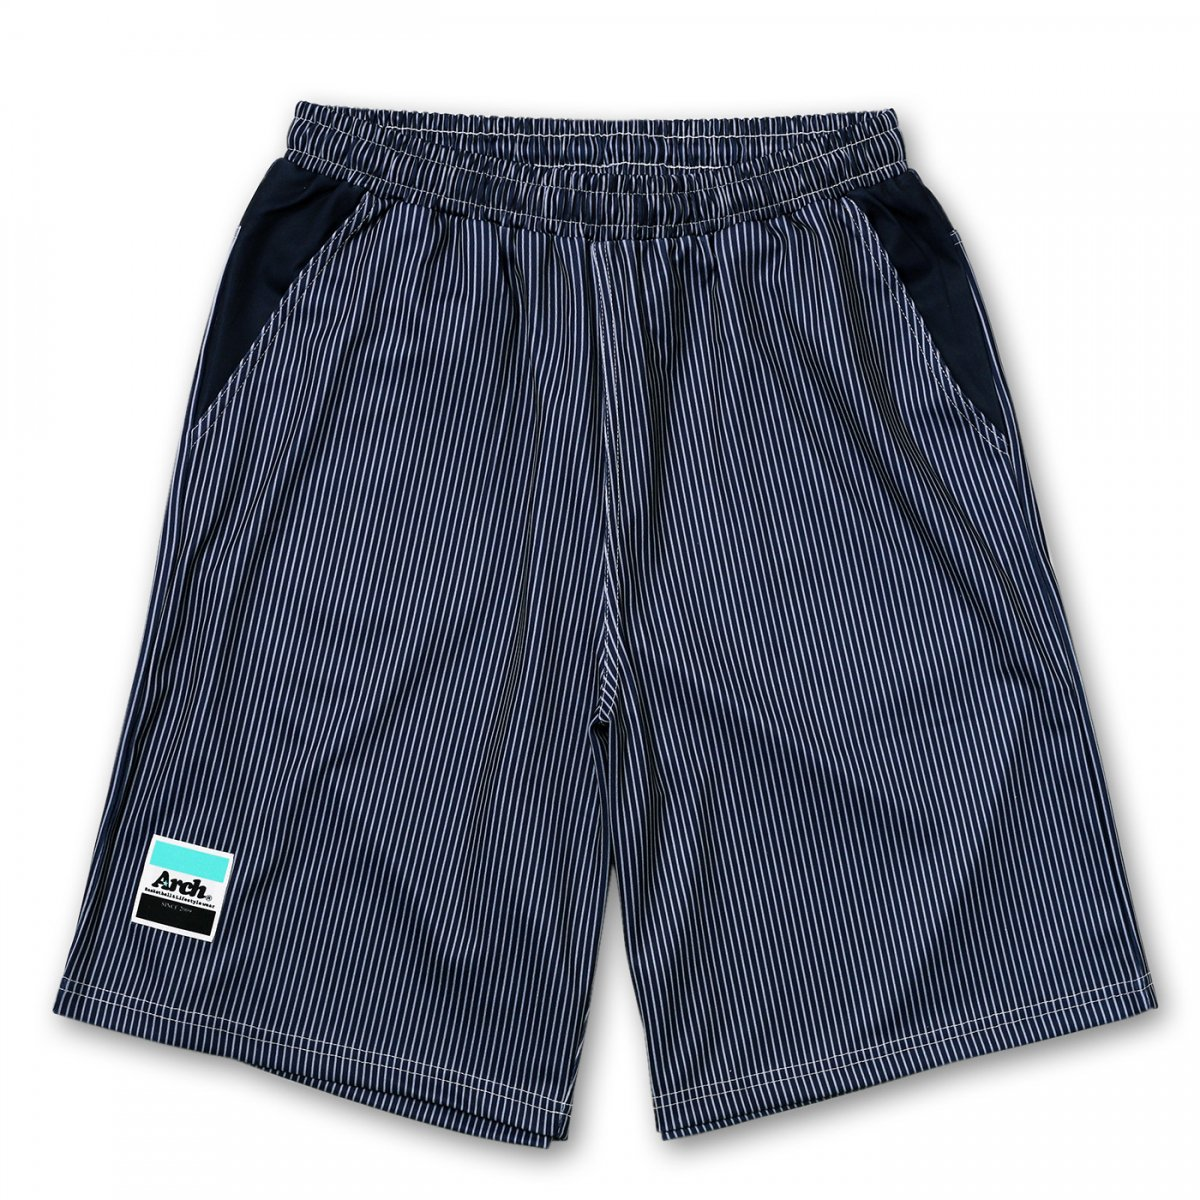 hickory stripe shorts【navy】